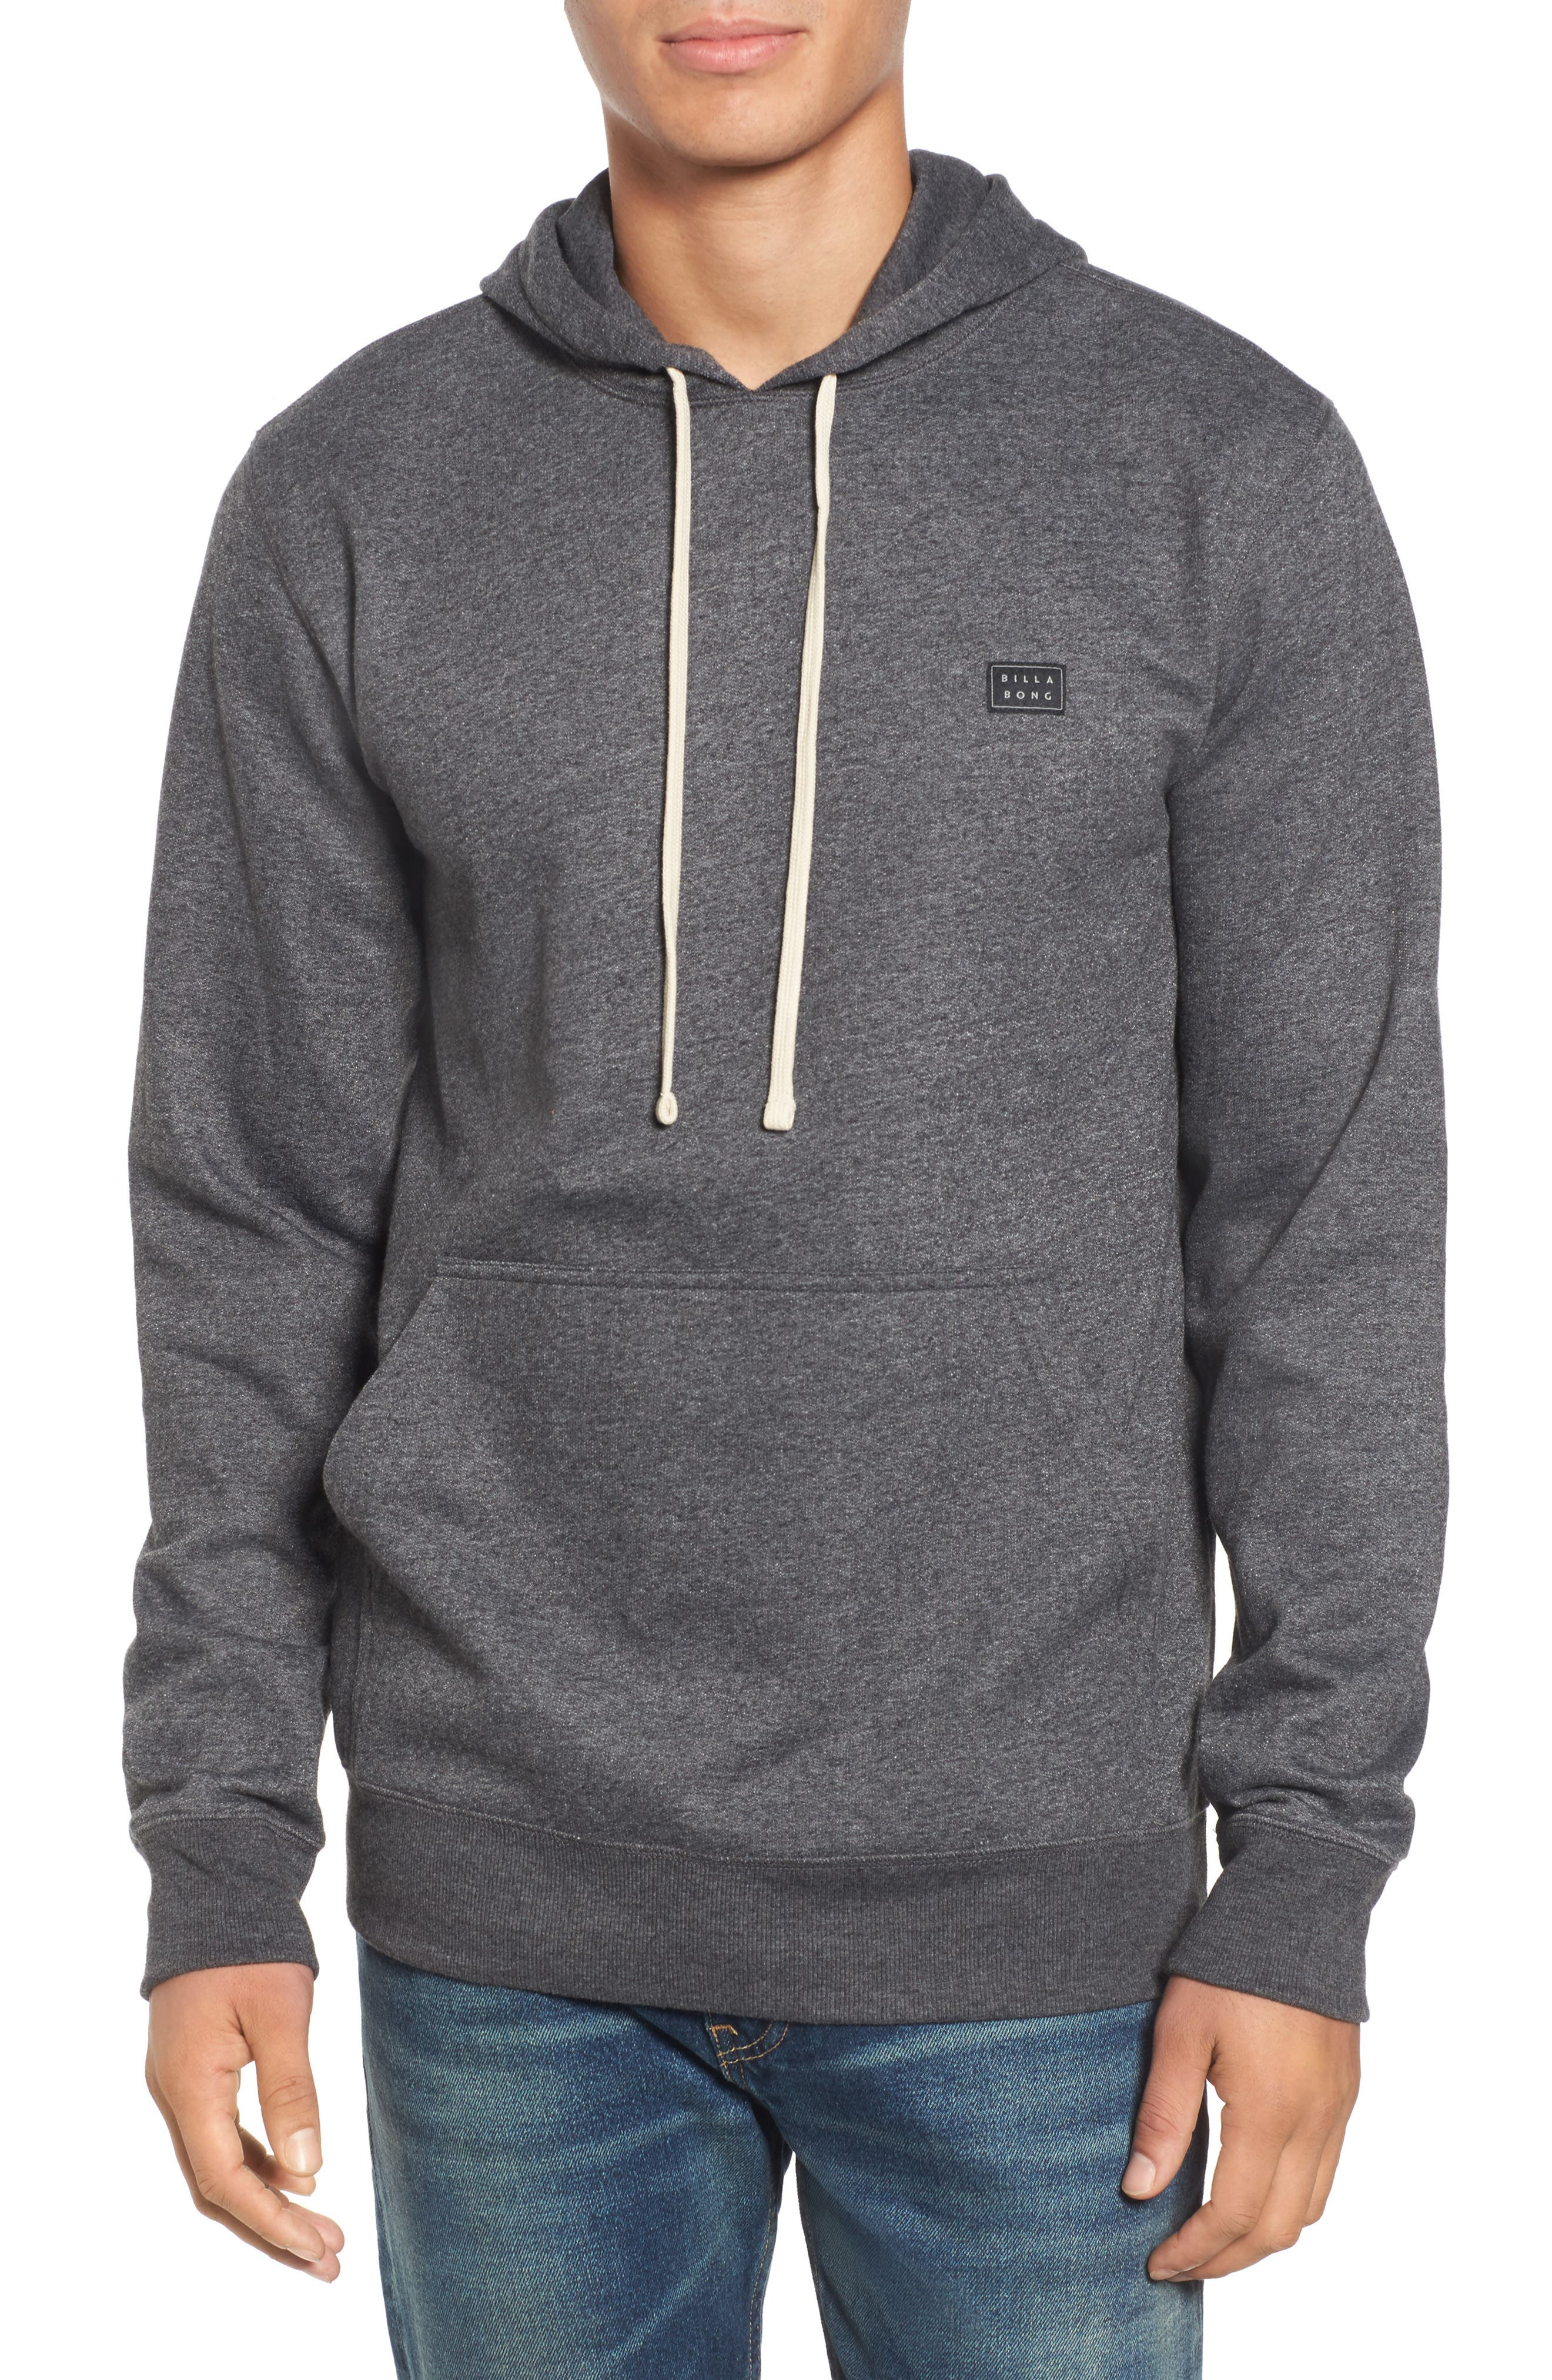 Alternate Image 1 Selected - Billabong All Day Pullover Hoodie